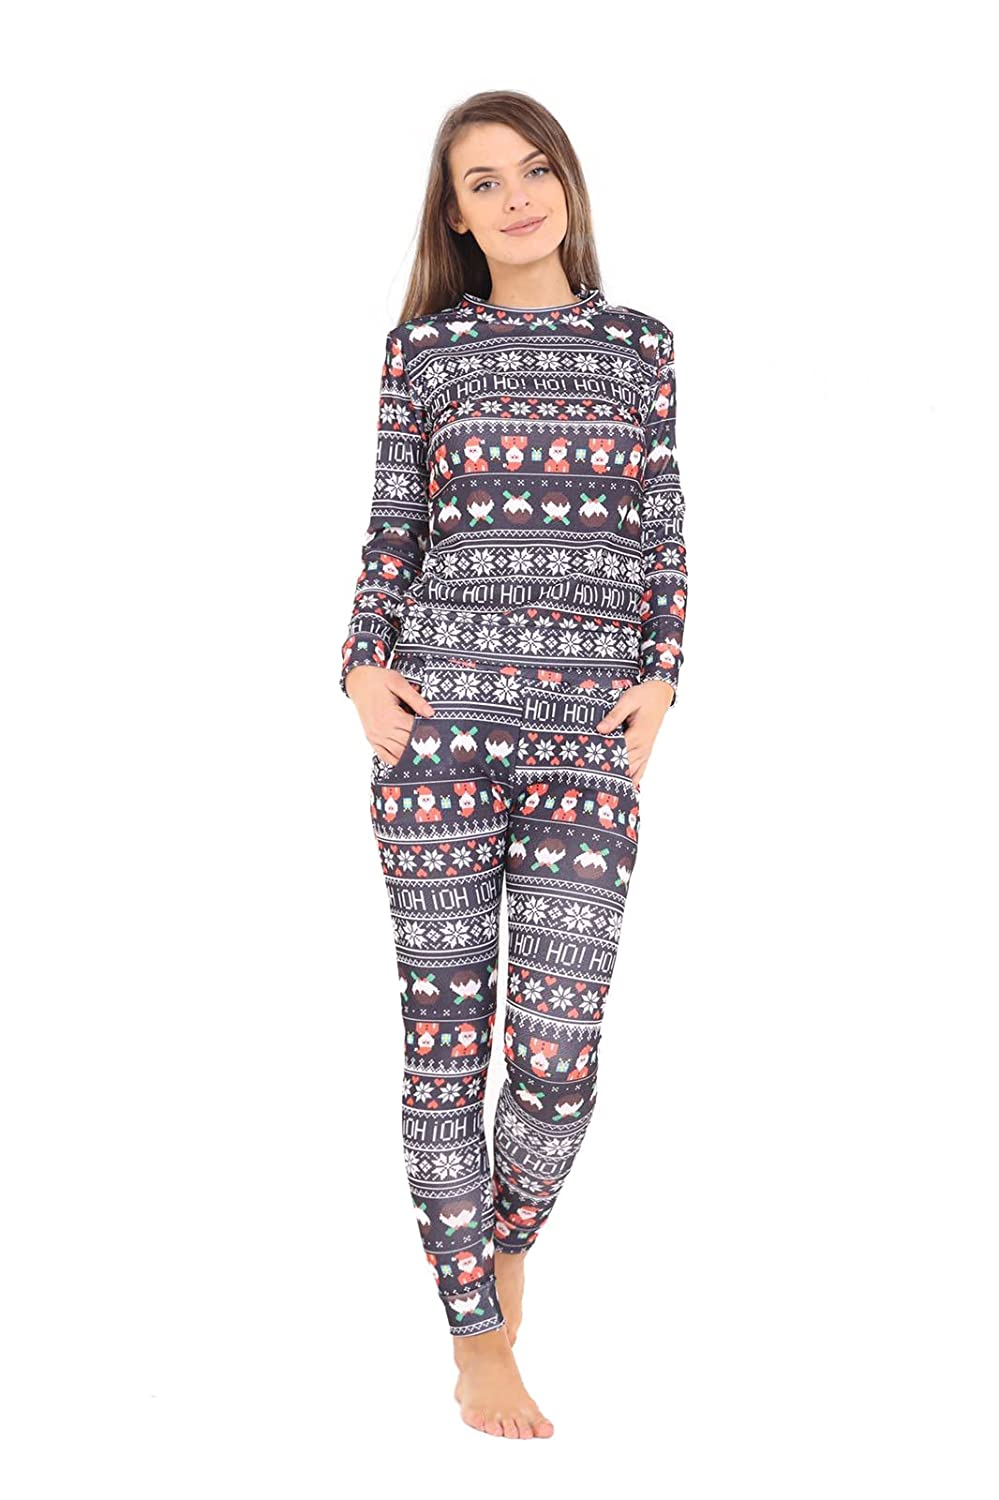 New Women Ladies Christmas Xmas Santa Reindeer Printed Tracksuit 2pc pyjama  set  Amazon.co.uk  Clothing 1ec85e420